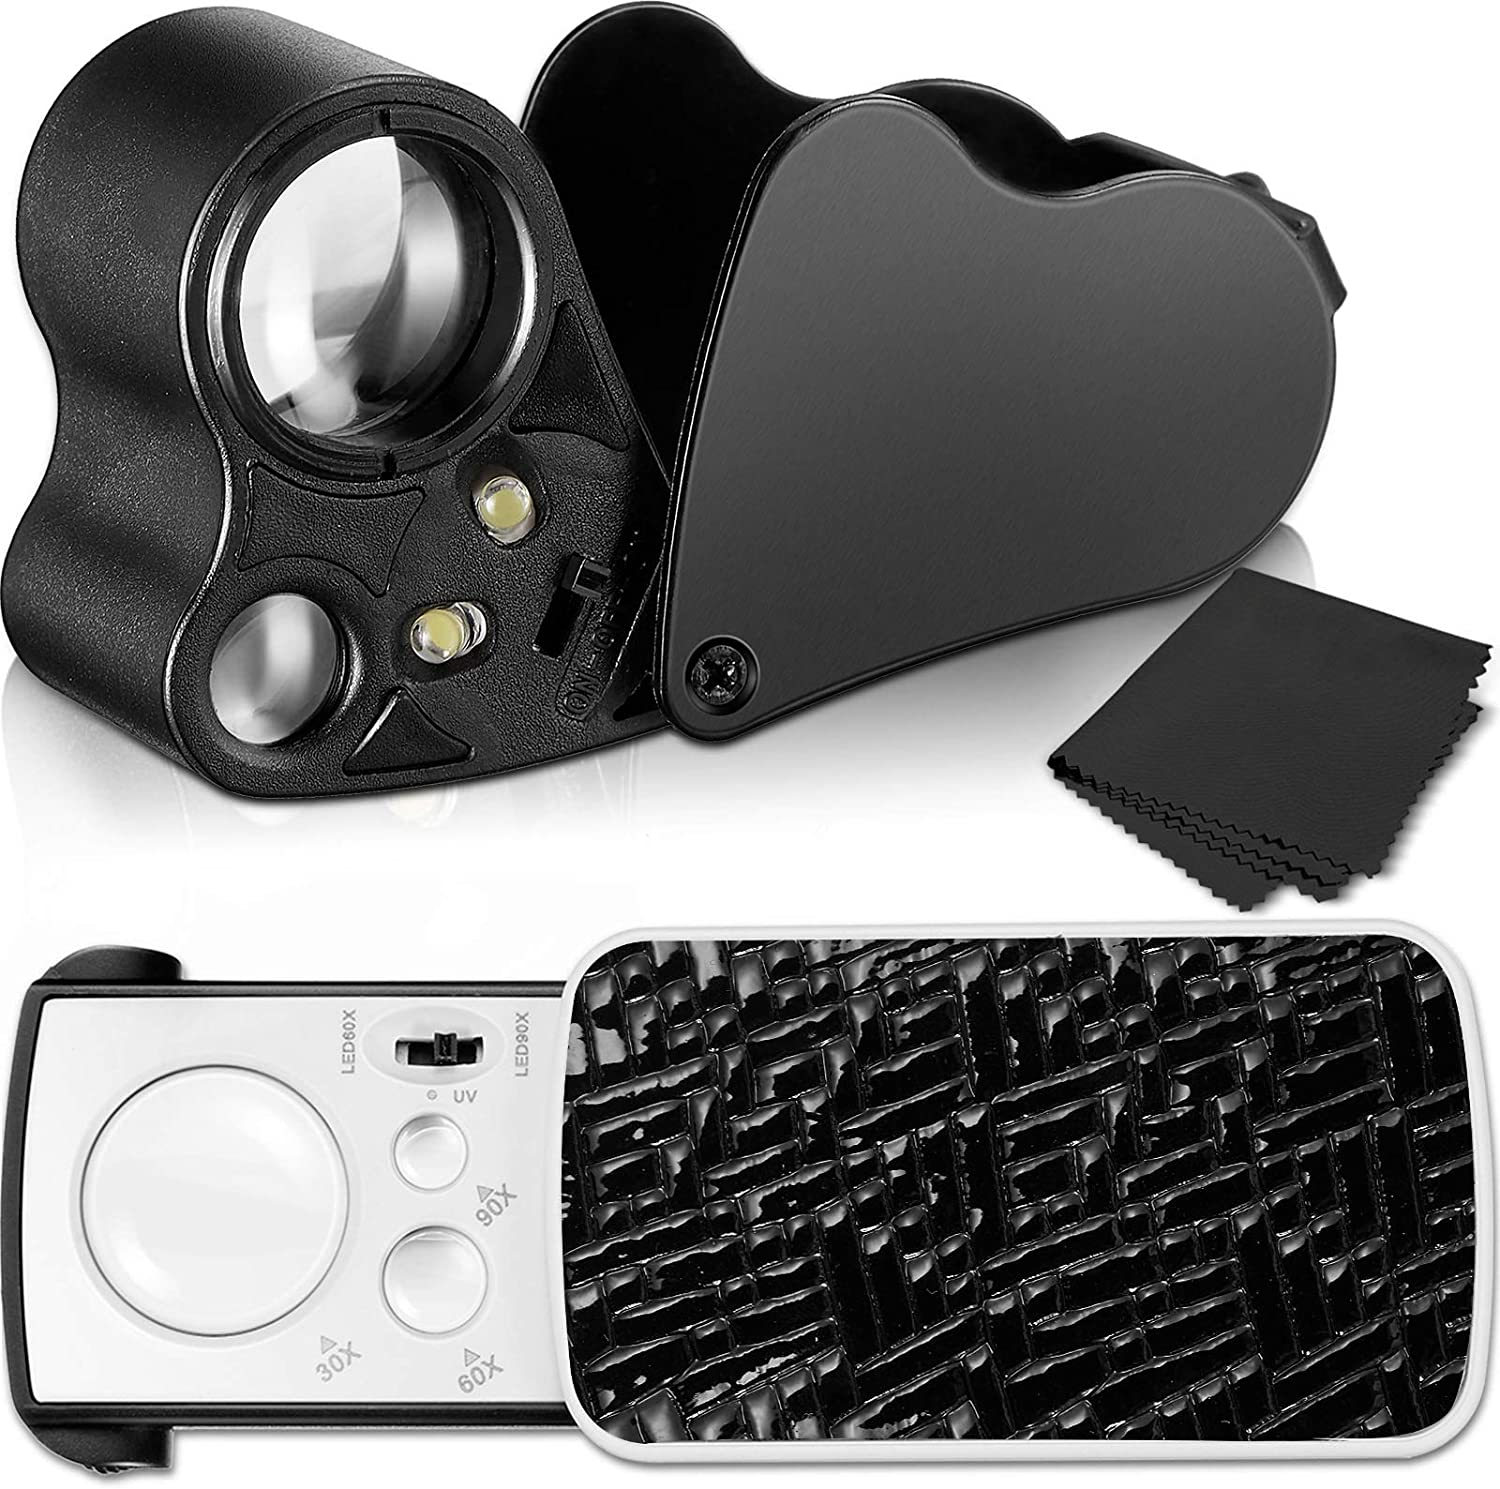 Coins Gems 2 Pieces Jewelers Loupe 30X 60X 90X Illuminated Jewelers Eye Loupe Magnifier Portable Jewelry Loupe Magnifier with UV Black Light and Bright LED Light for Jewelry Diamonds Stamps Rocks